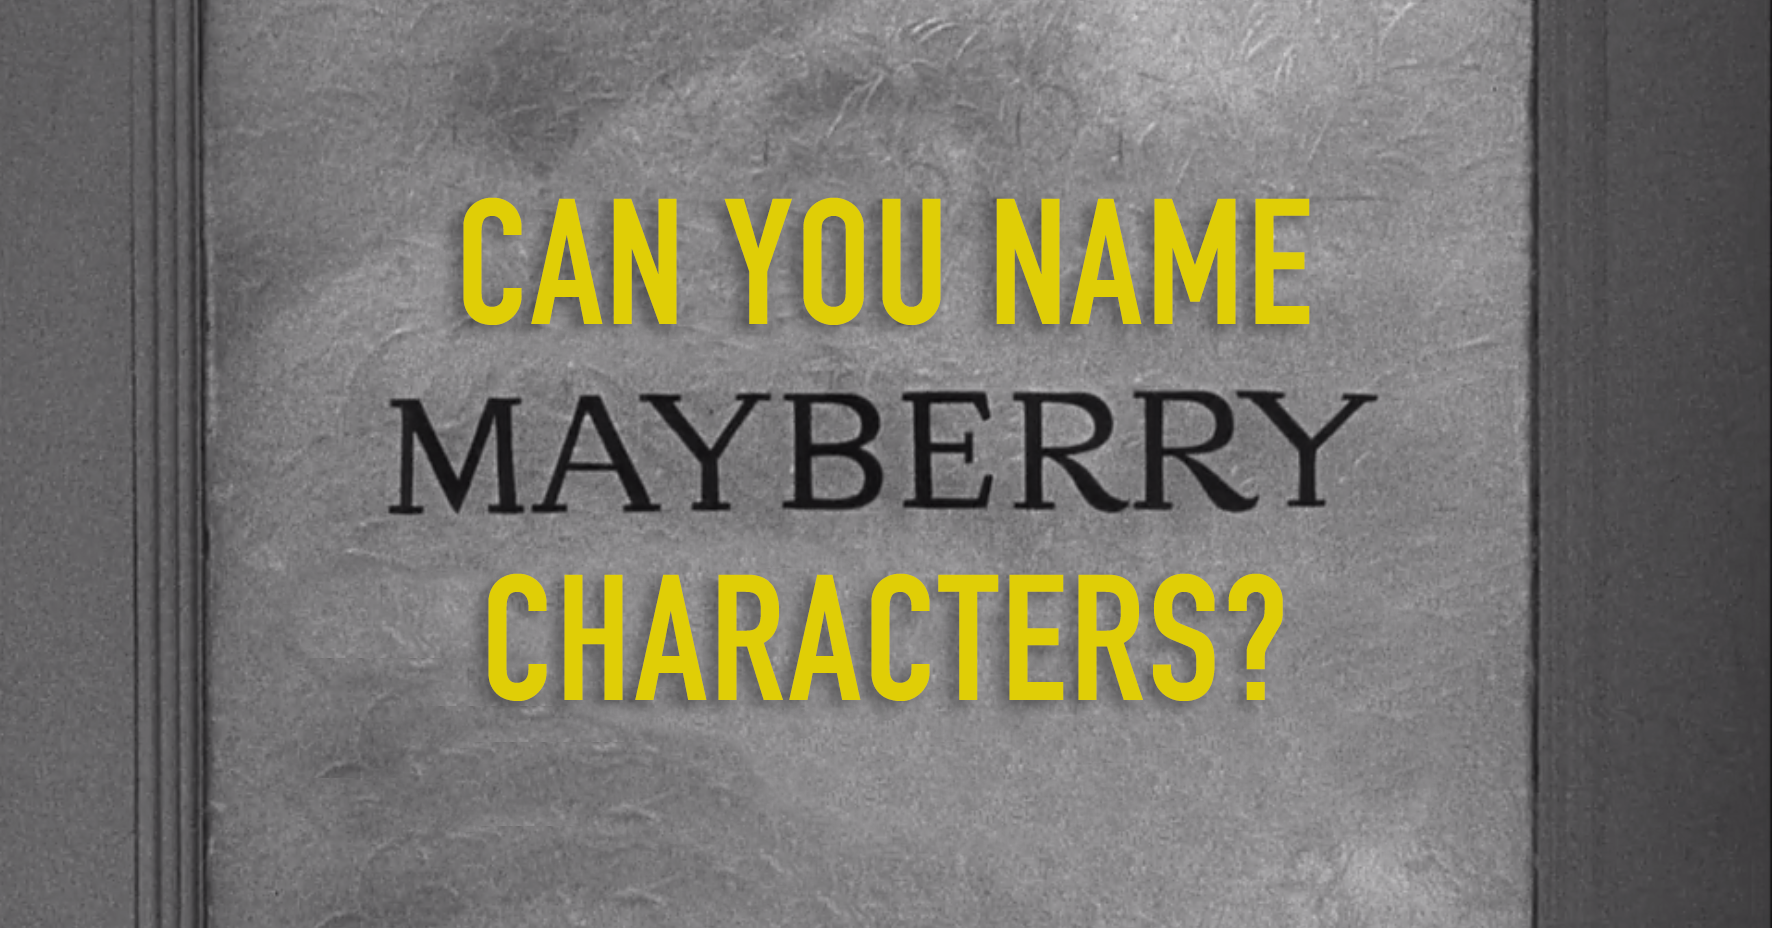 Can you name these citizens of Mayberry?